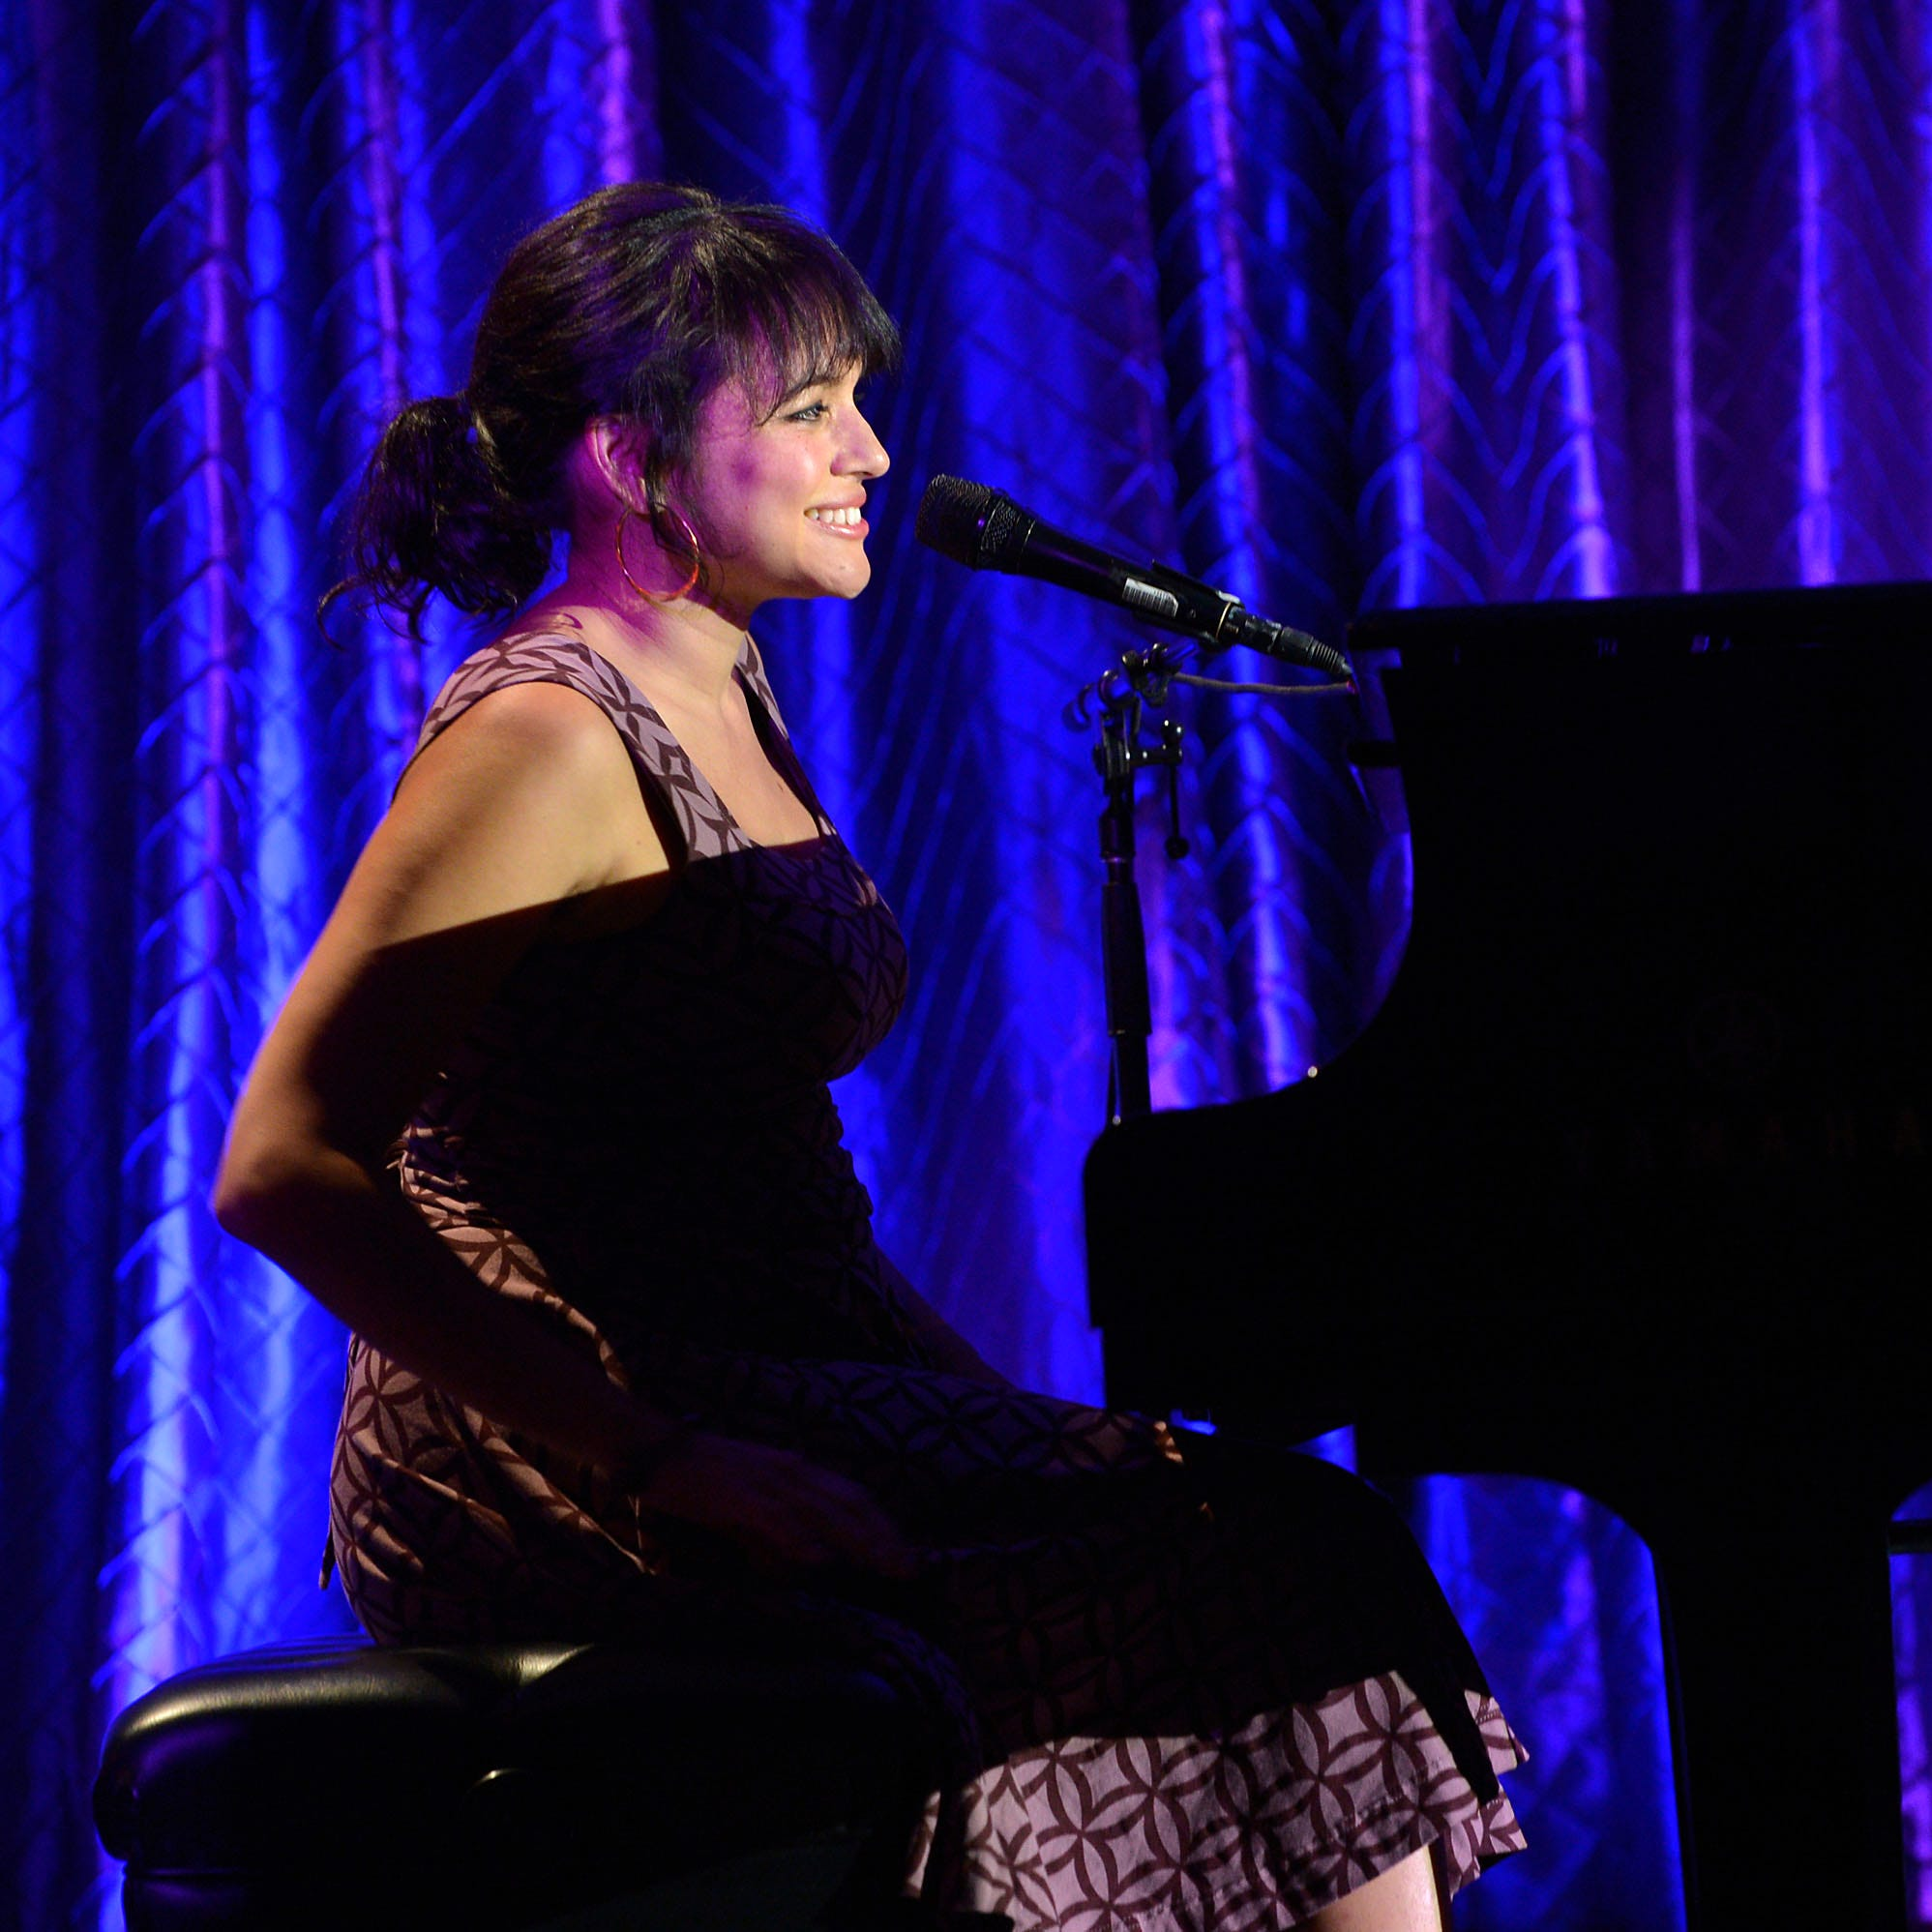 Get tickets now to see Norah Jones at The Queen with this pre-sale code